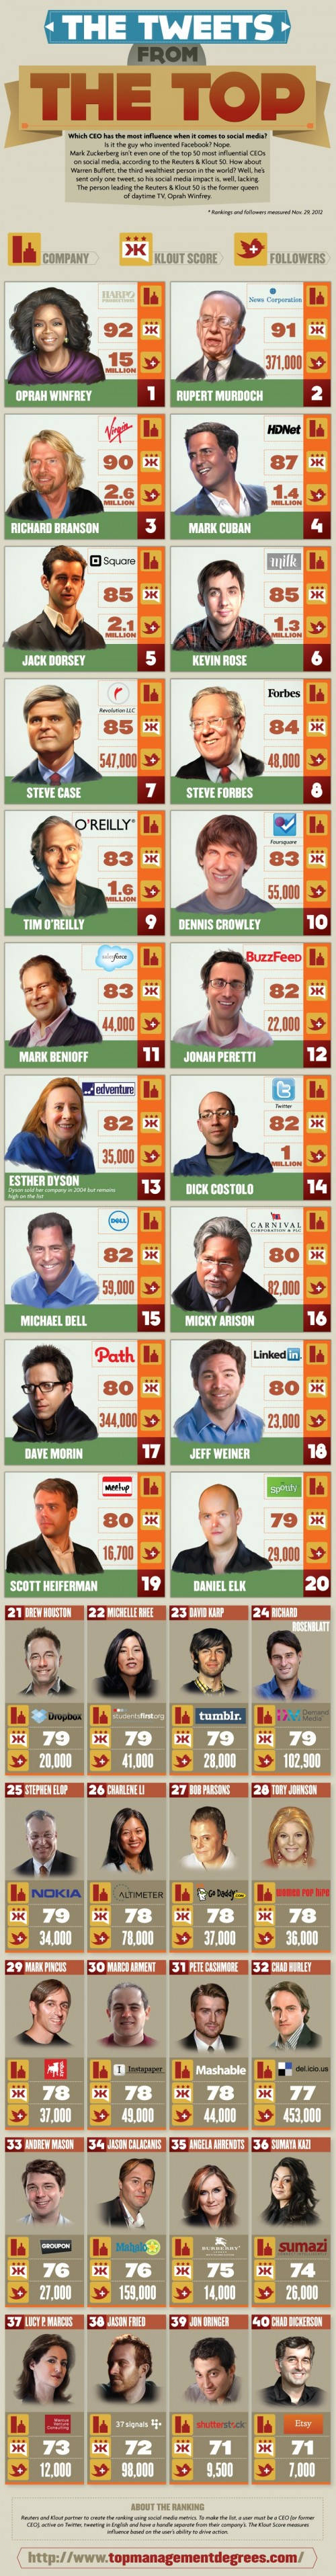 Oprah Is The Most Influential CEO In Social Media (Infographic)